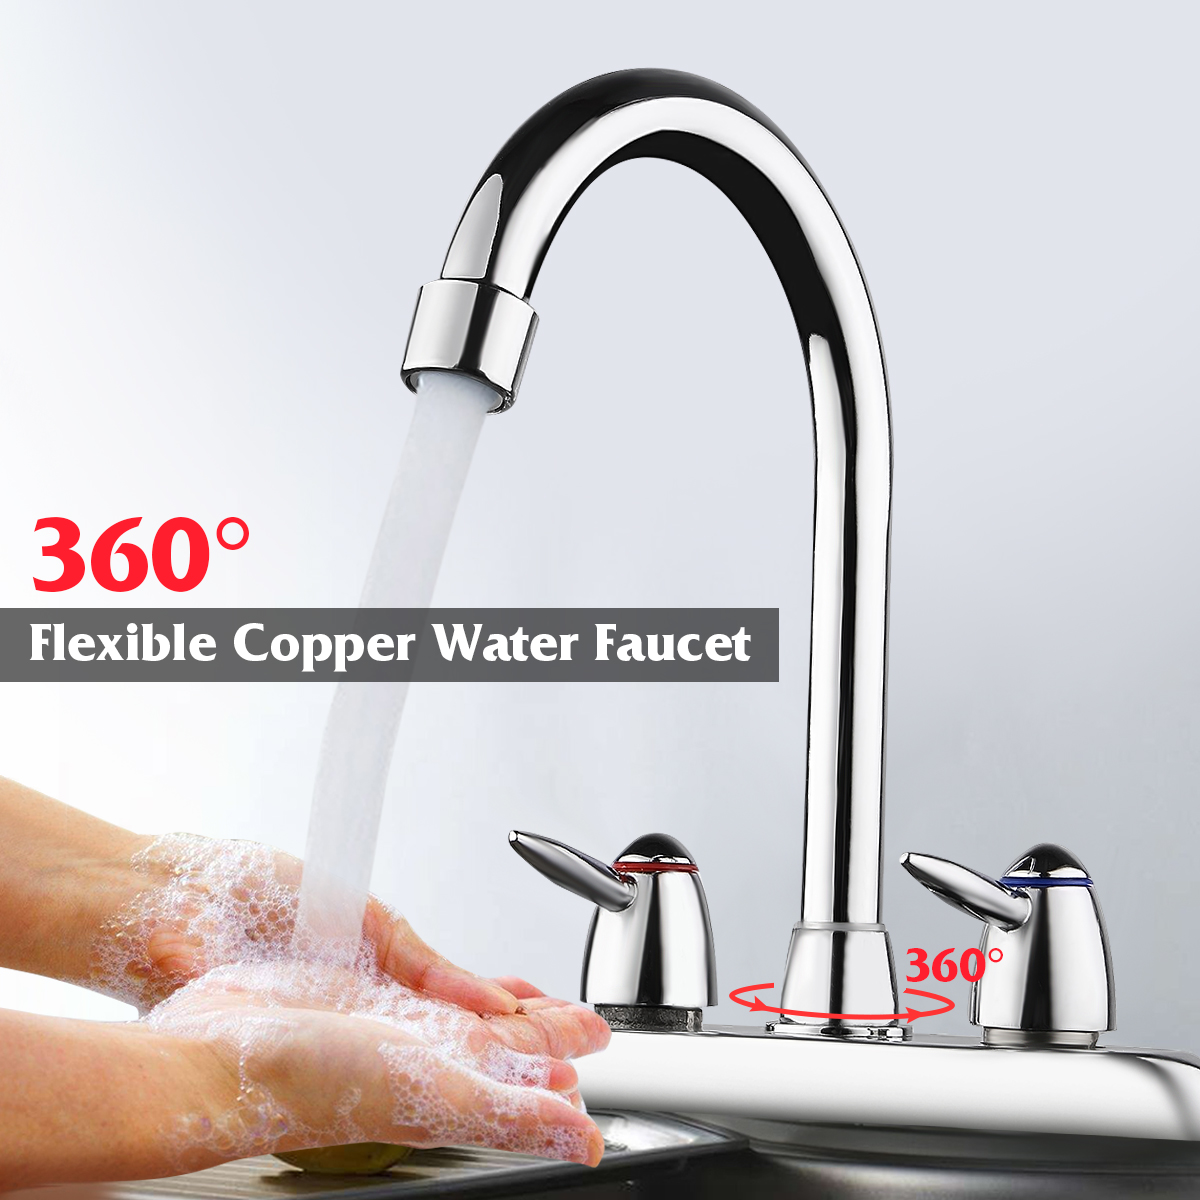 360° Stainless Steel 2 Handle/Hole Gooseneck High Spout Kitchen Bathroom Faucet Sink Cold and Hot Basin Faucet Spray Mixer Water Tap Bar Sink Faucet